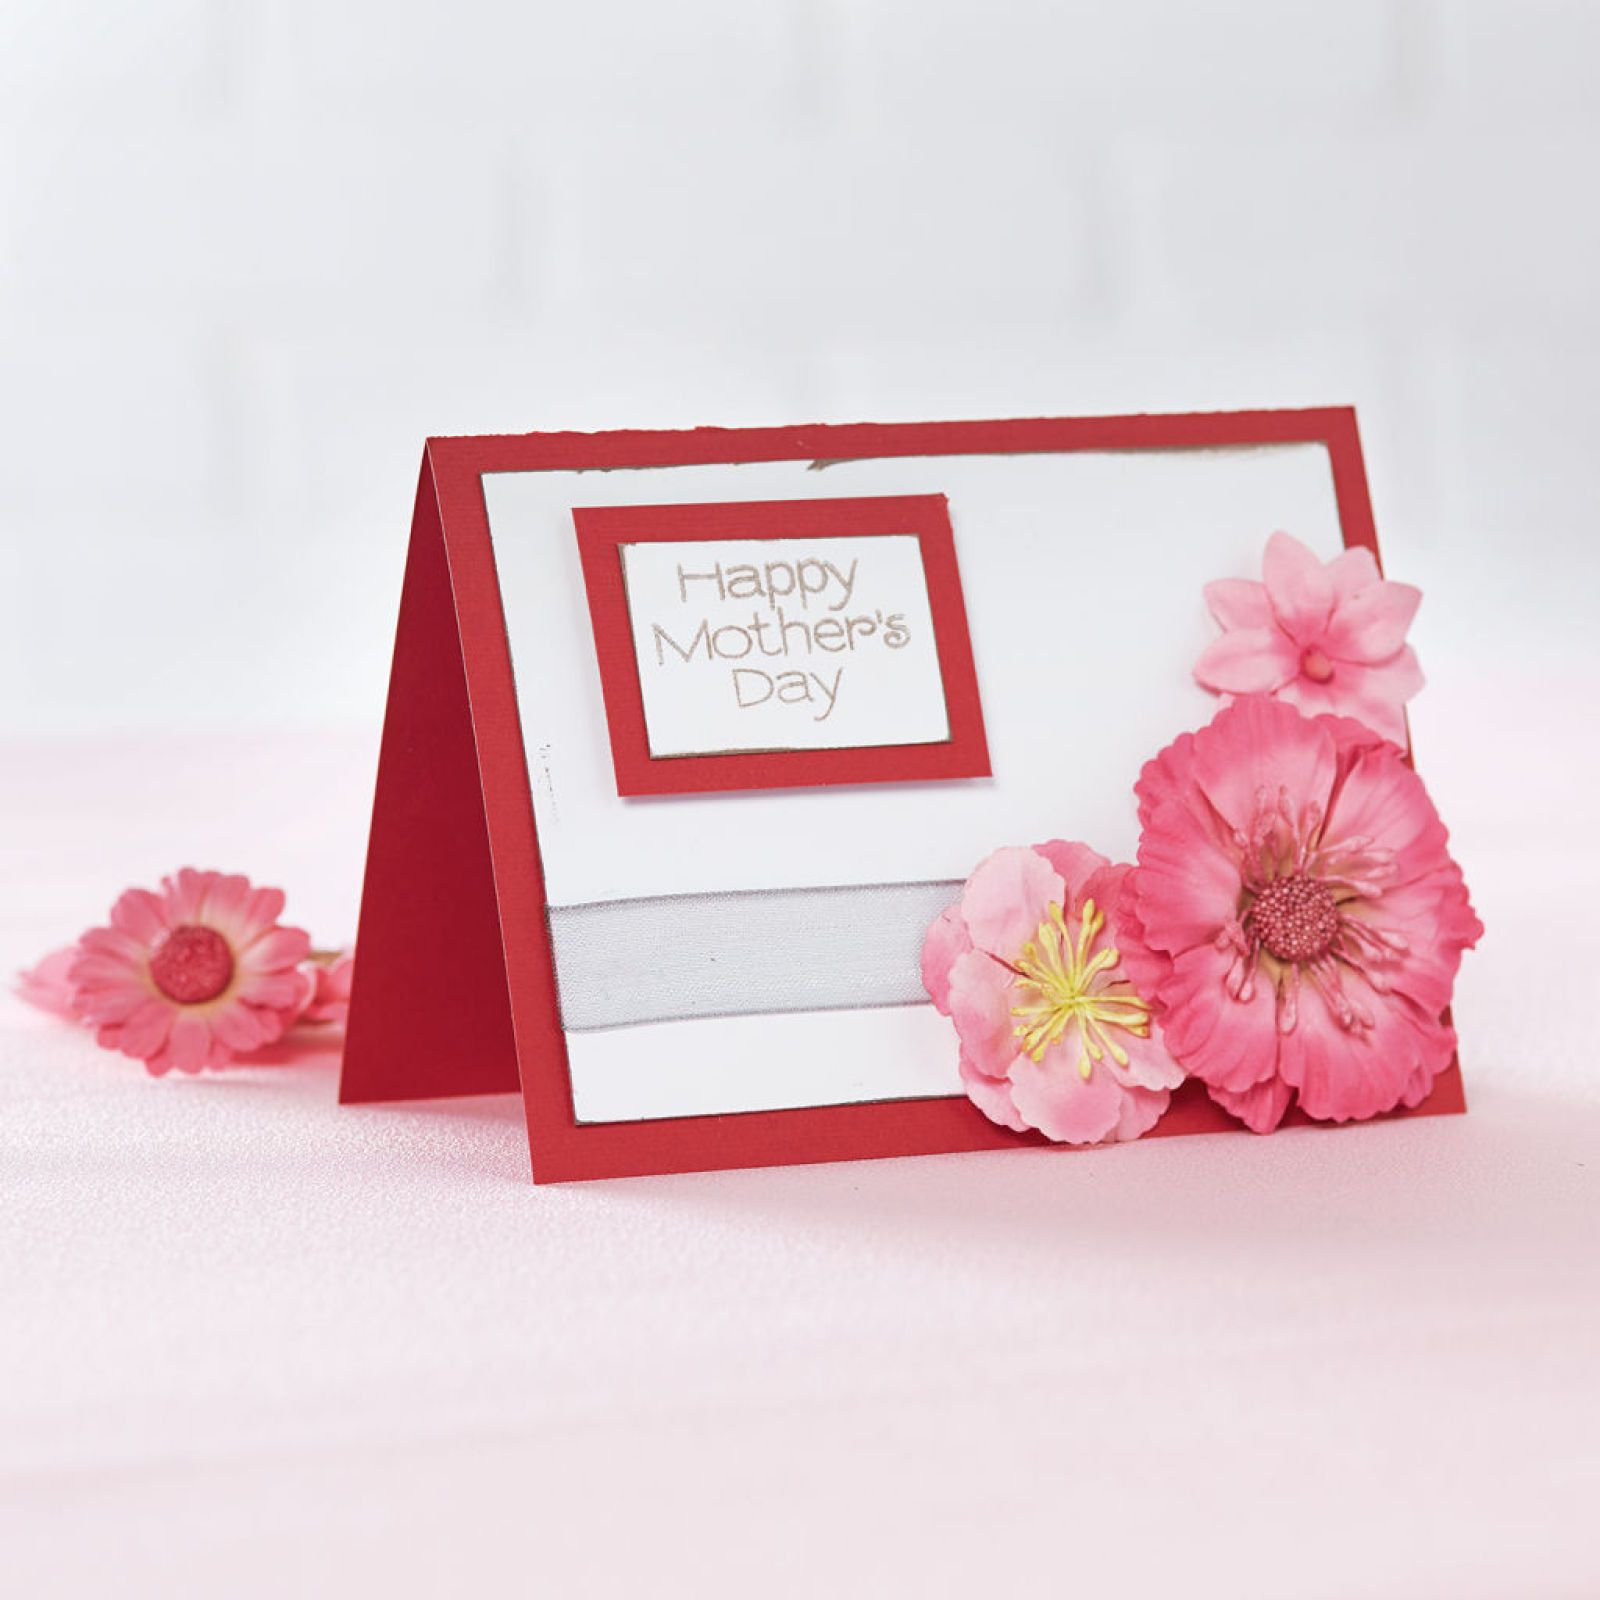 Motherus day diy happy motherus day floral cards motherus day